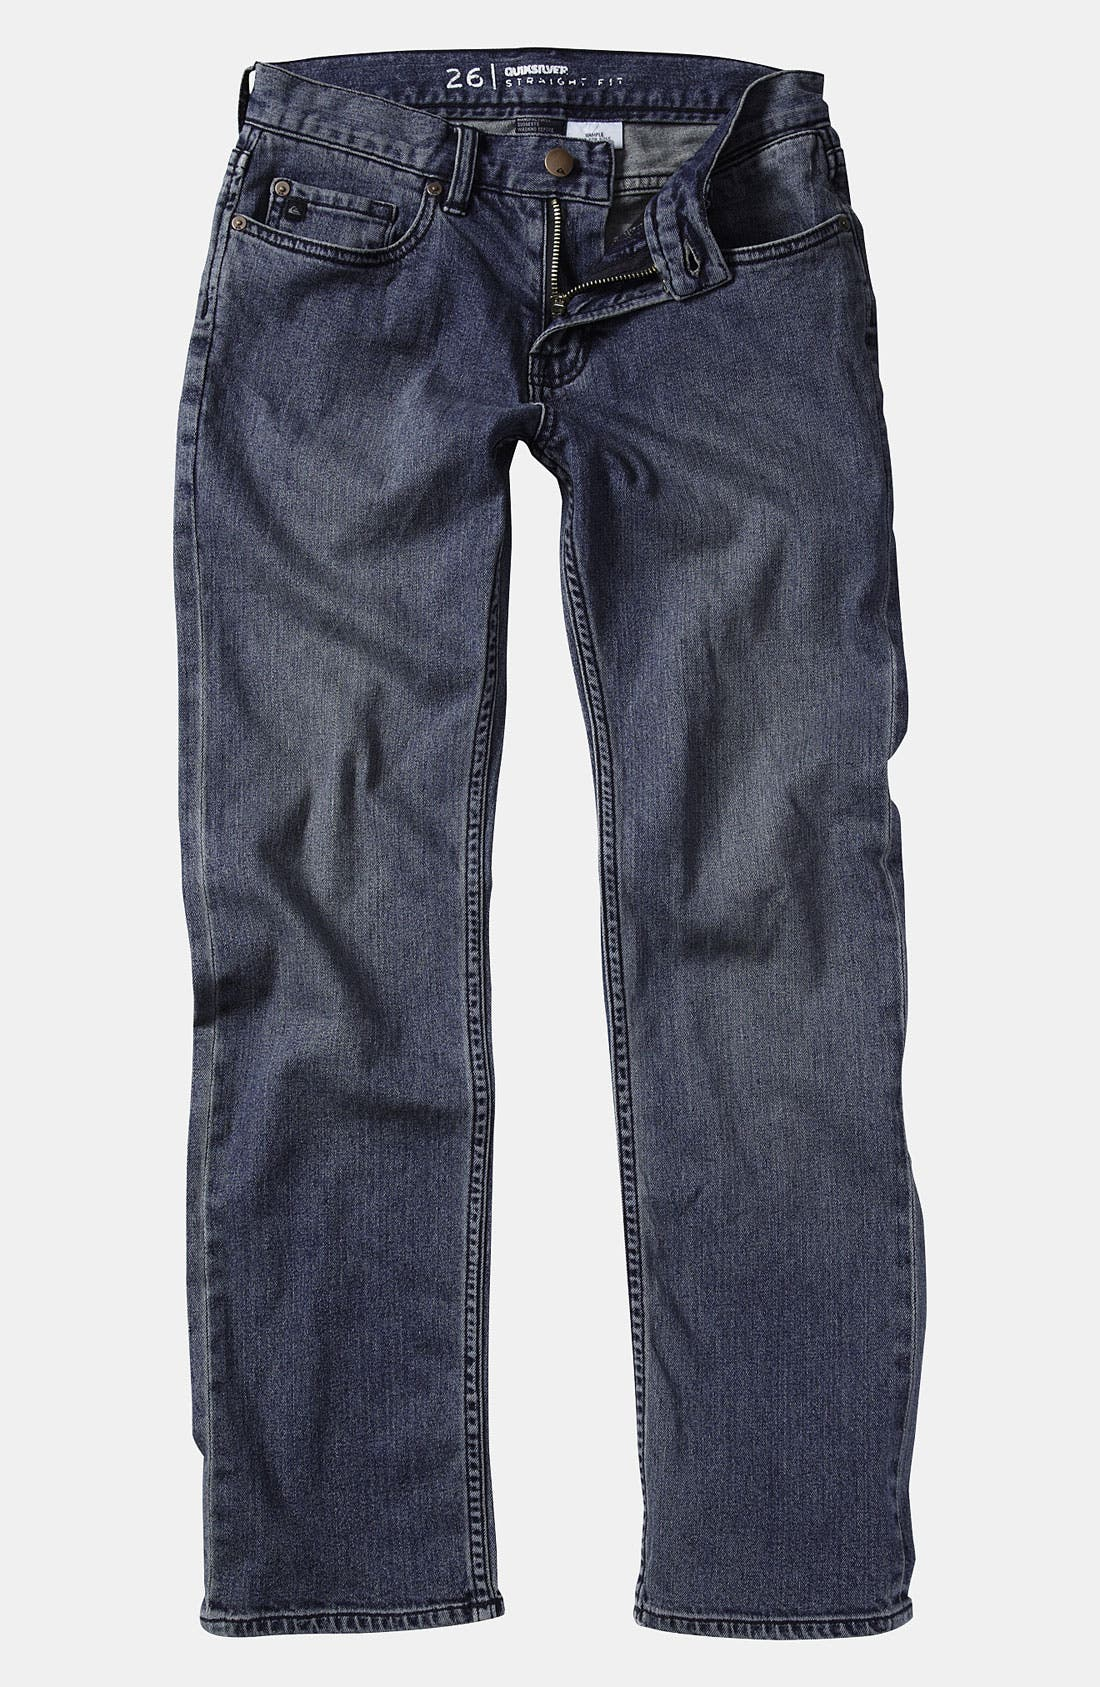 Main Image - Quiksilver 'Zeppelin' Jeans (Big Boys)